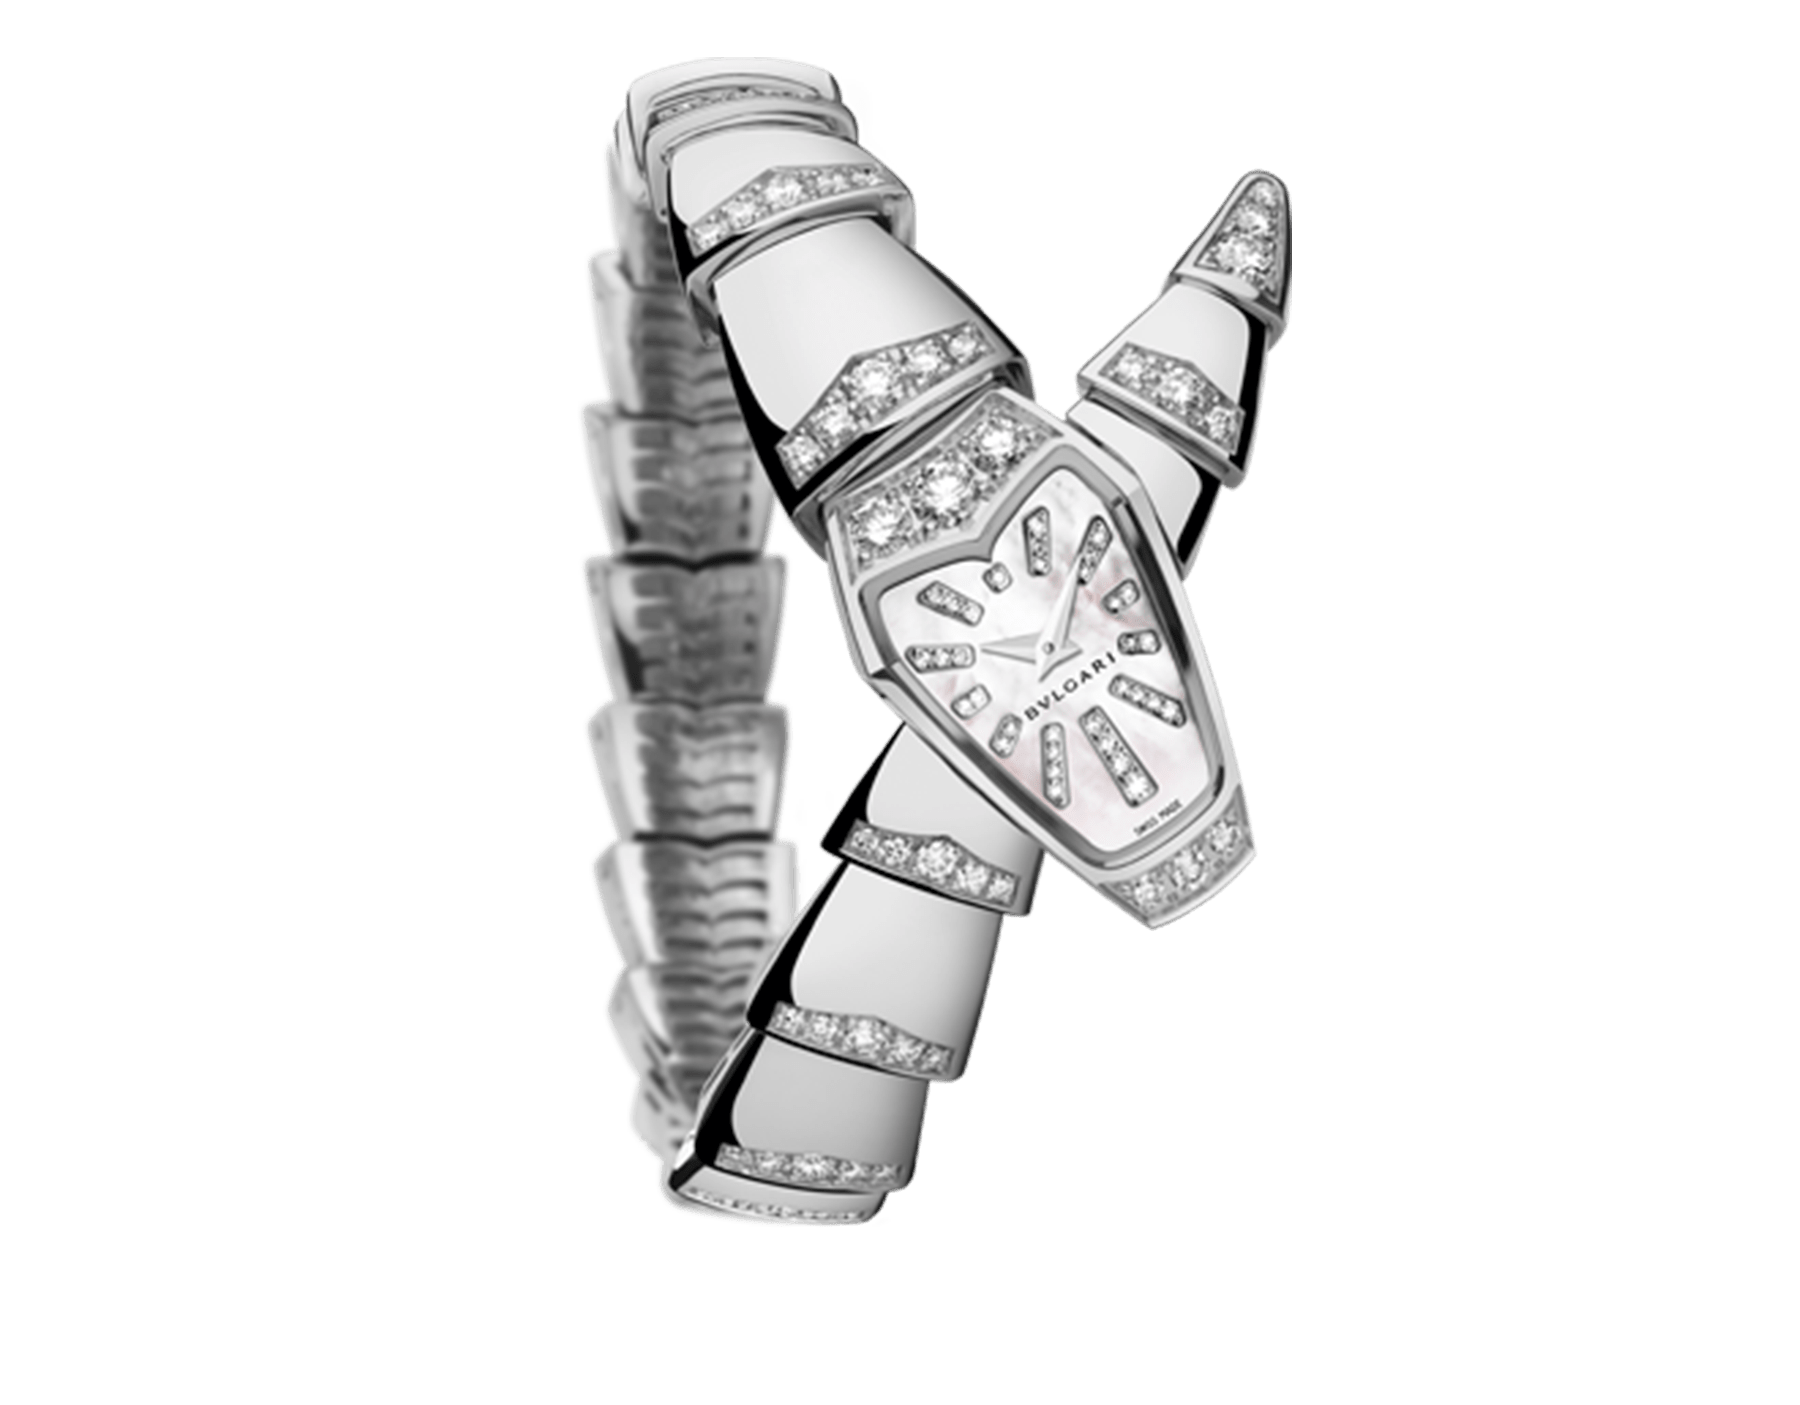 Serpenti Jewellery Watch in 18 kt white gold case and single spiral bracelet, both set with brilliant cut diamonds, white mother-of-pearl dial and diamond indexes. 102366 image 1